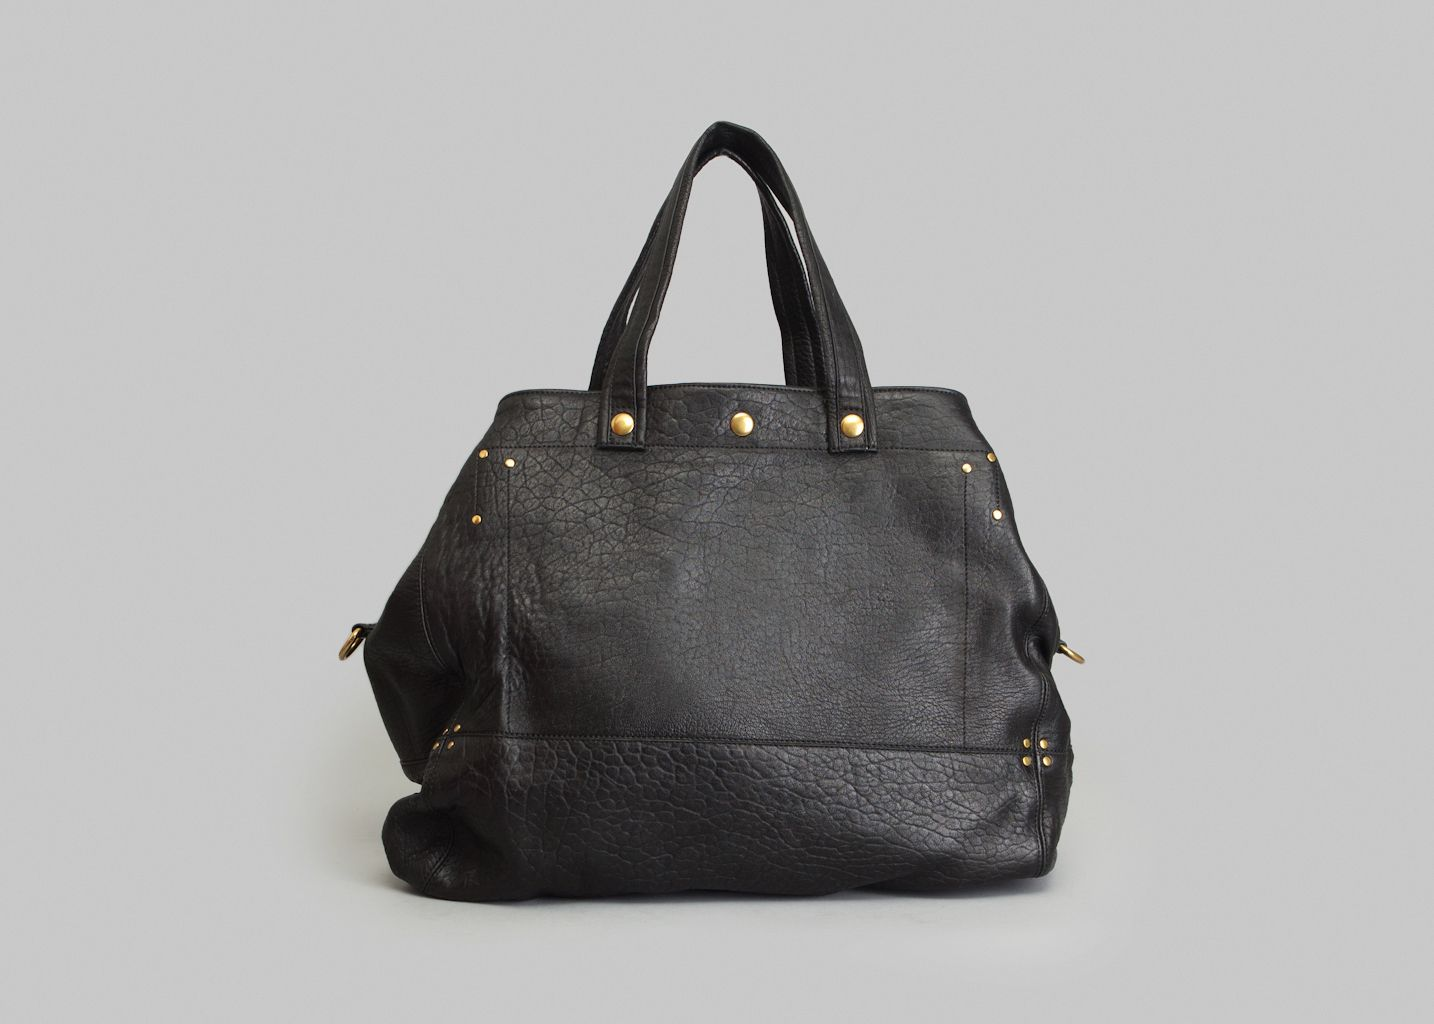 0c6ea89673 Billy Bag BlackJérôme Dreyfuss